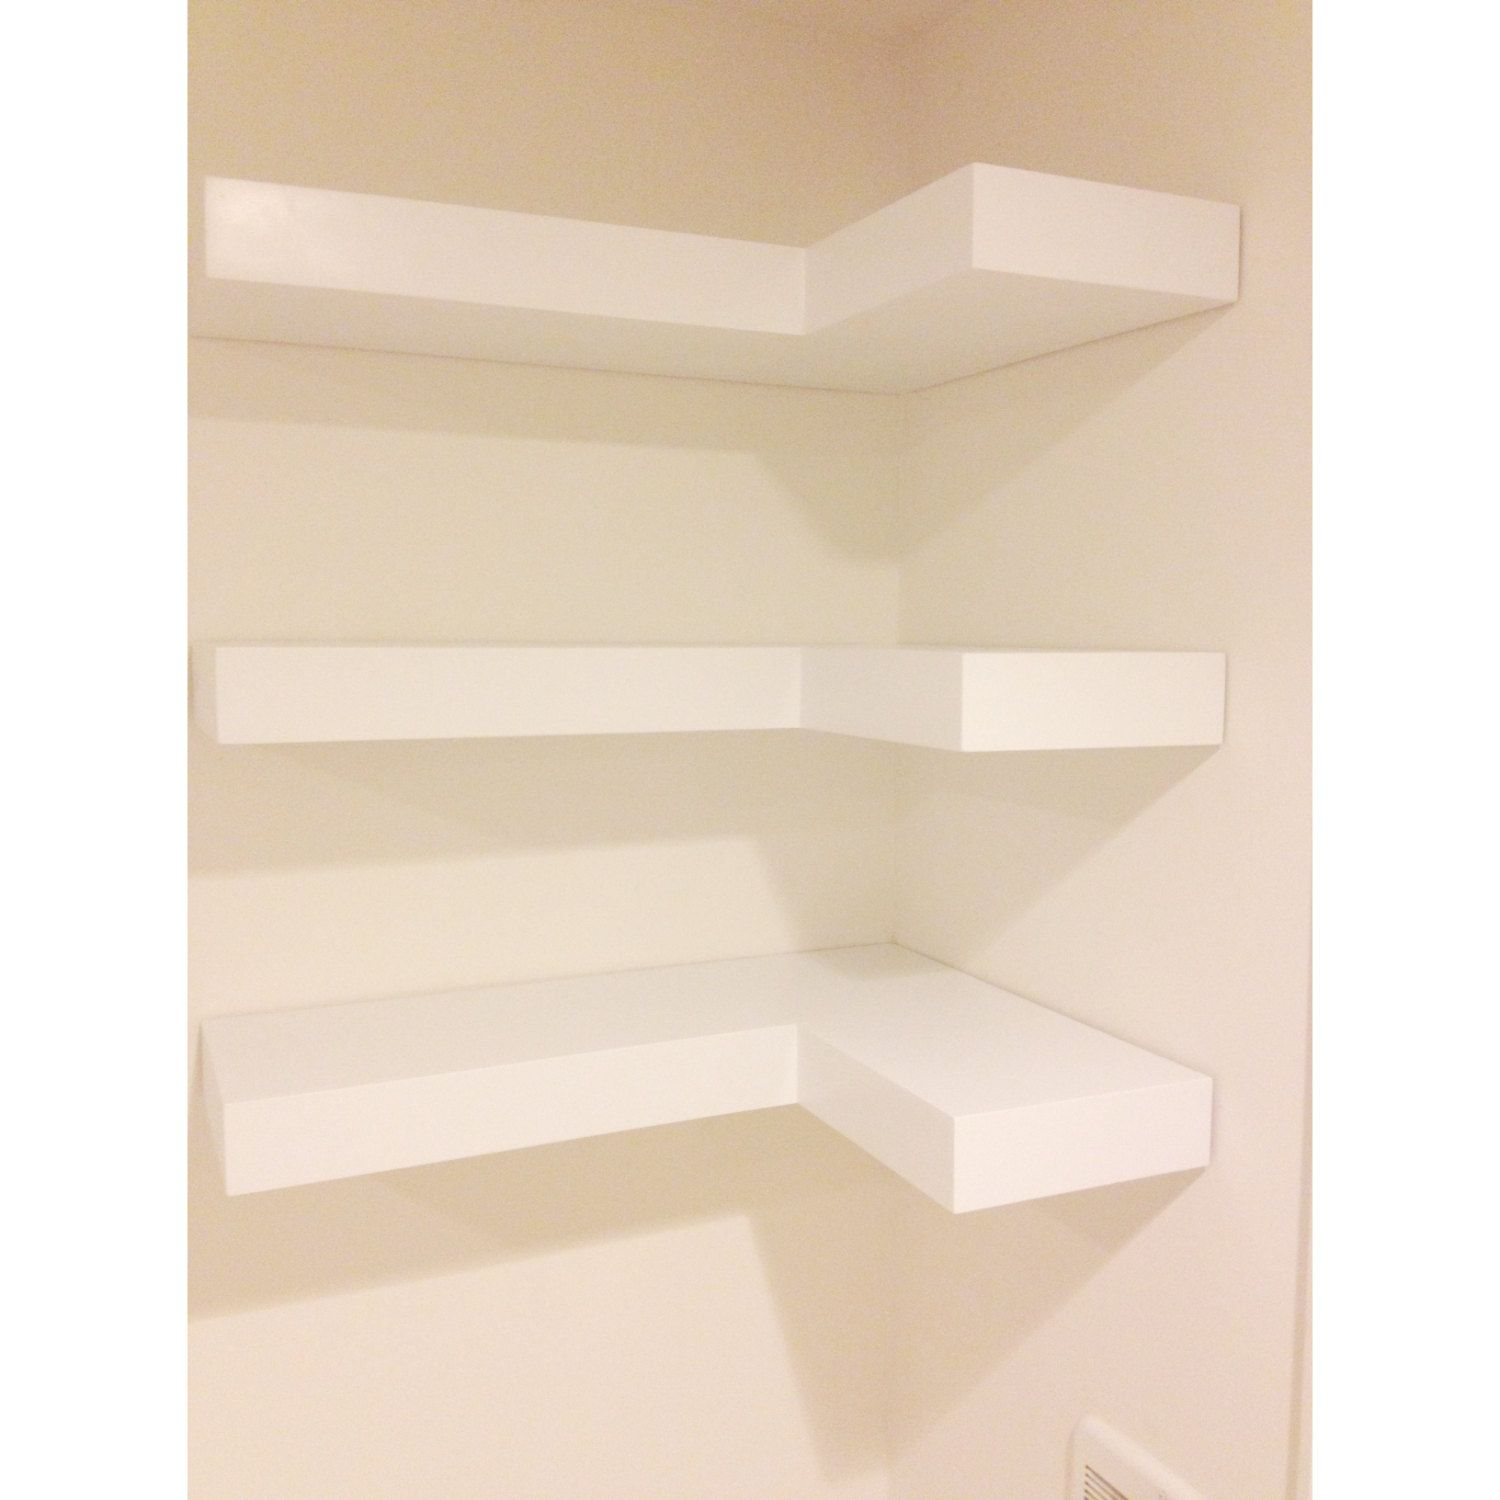 White Floating Corner Shelves Set Of Three By Woodguycustoms, $12000